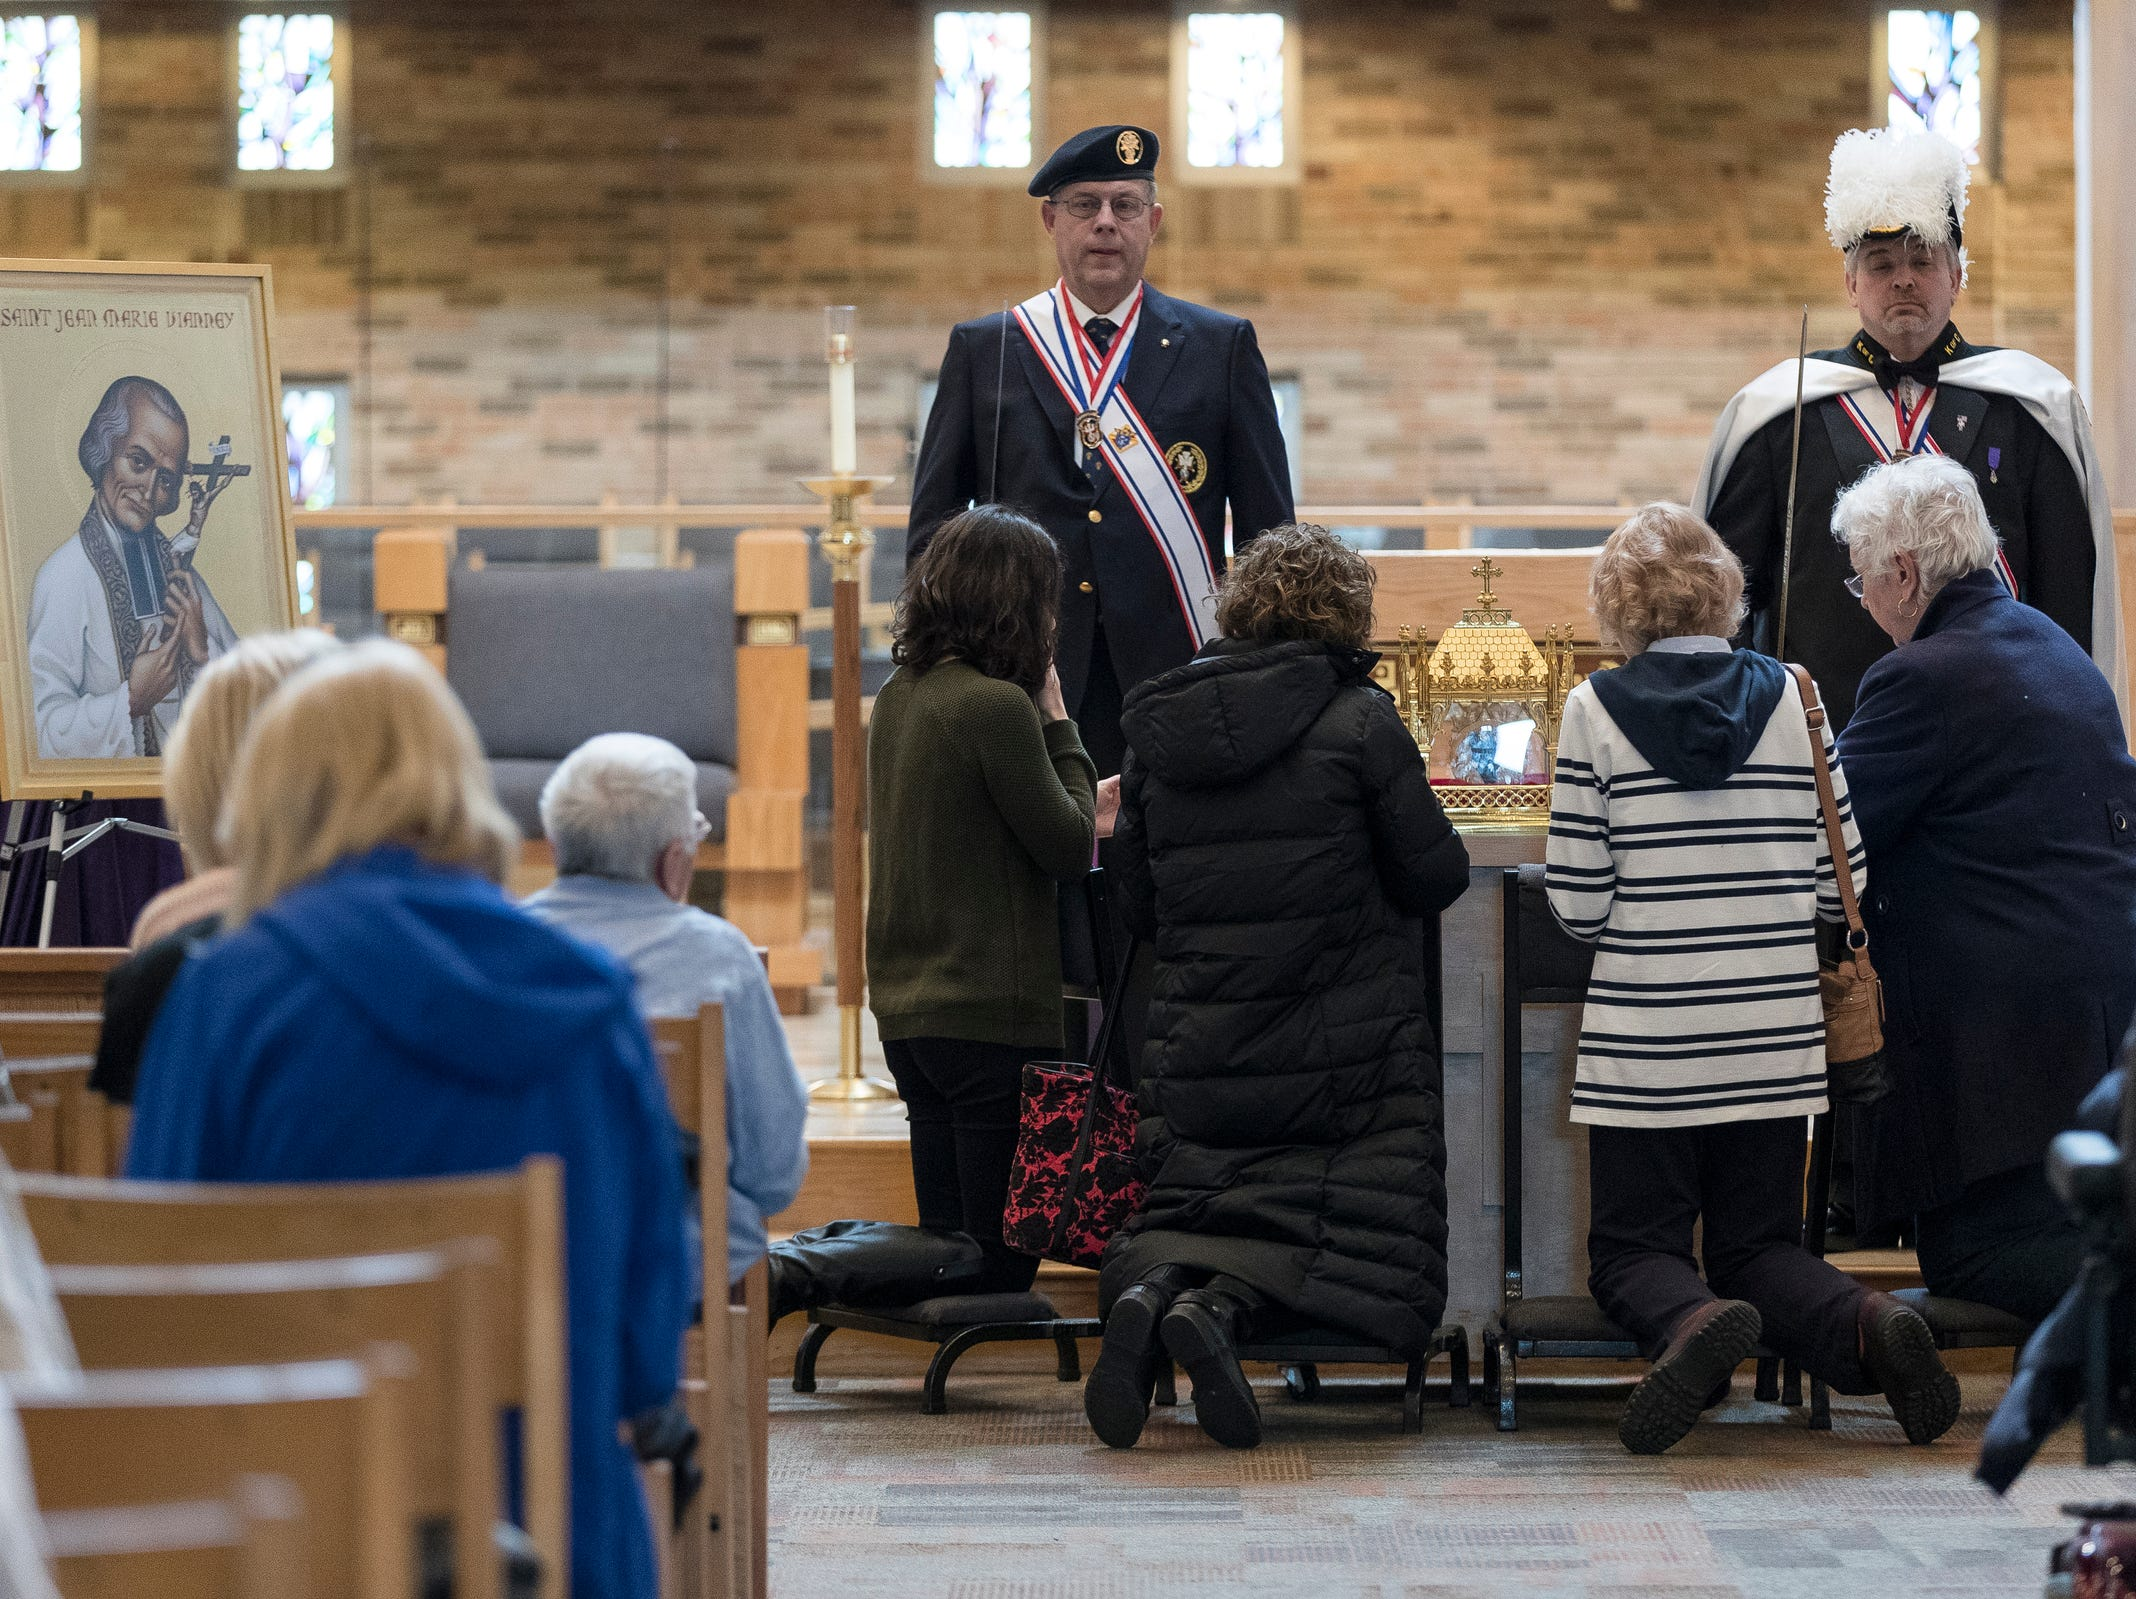 Pilgrims pray by the reliquary which contains physical heart of France's St. John Vianney during Heart of a Priest tour at St. John Vianney Parish in Shelby Township, Saturday, March 30, 2019.